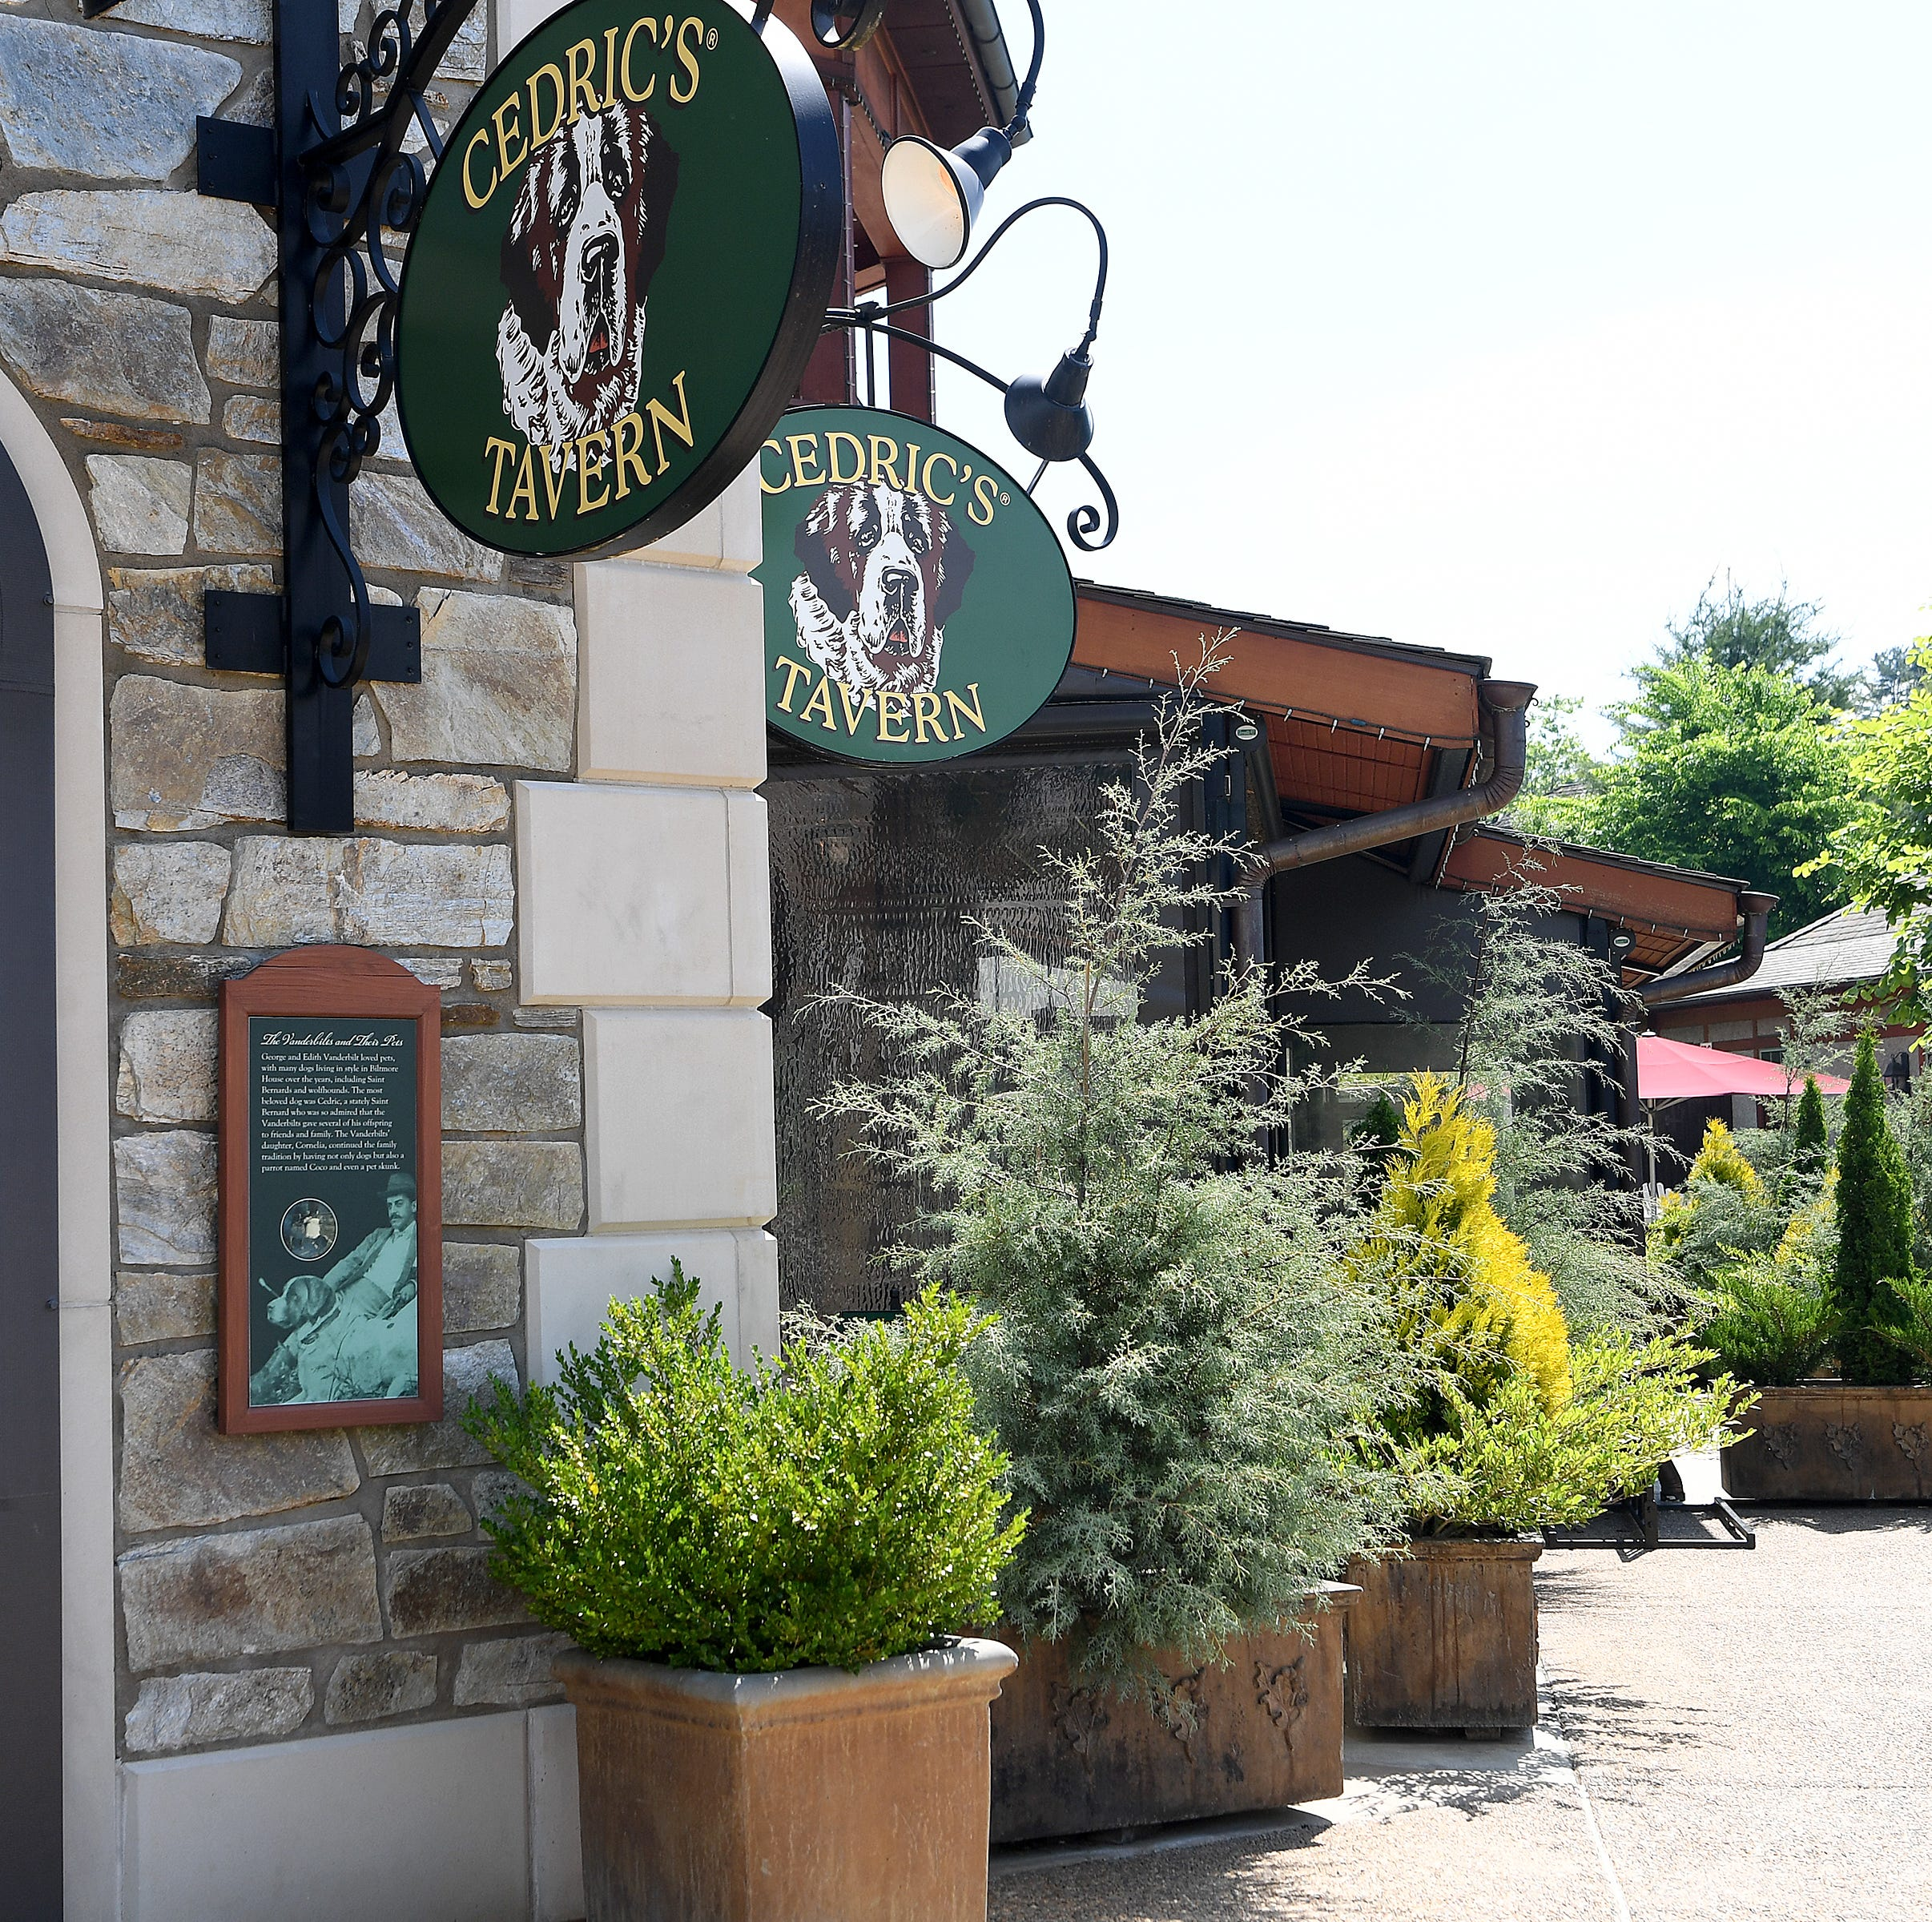 Dining review: Cedric's Tavern at Biltmore Estate